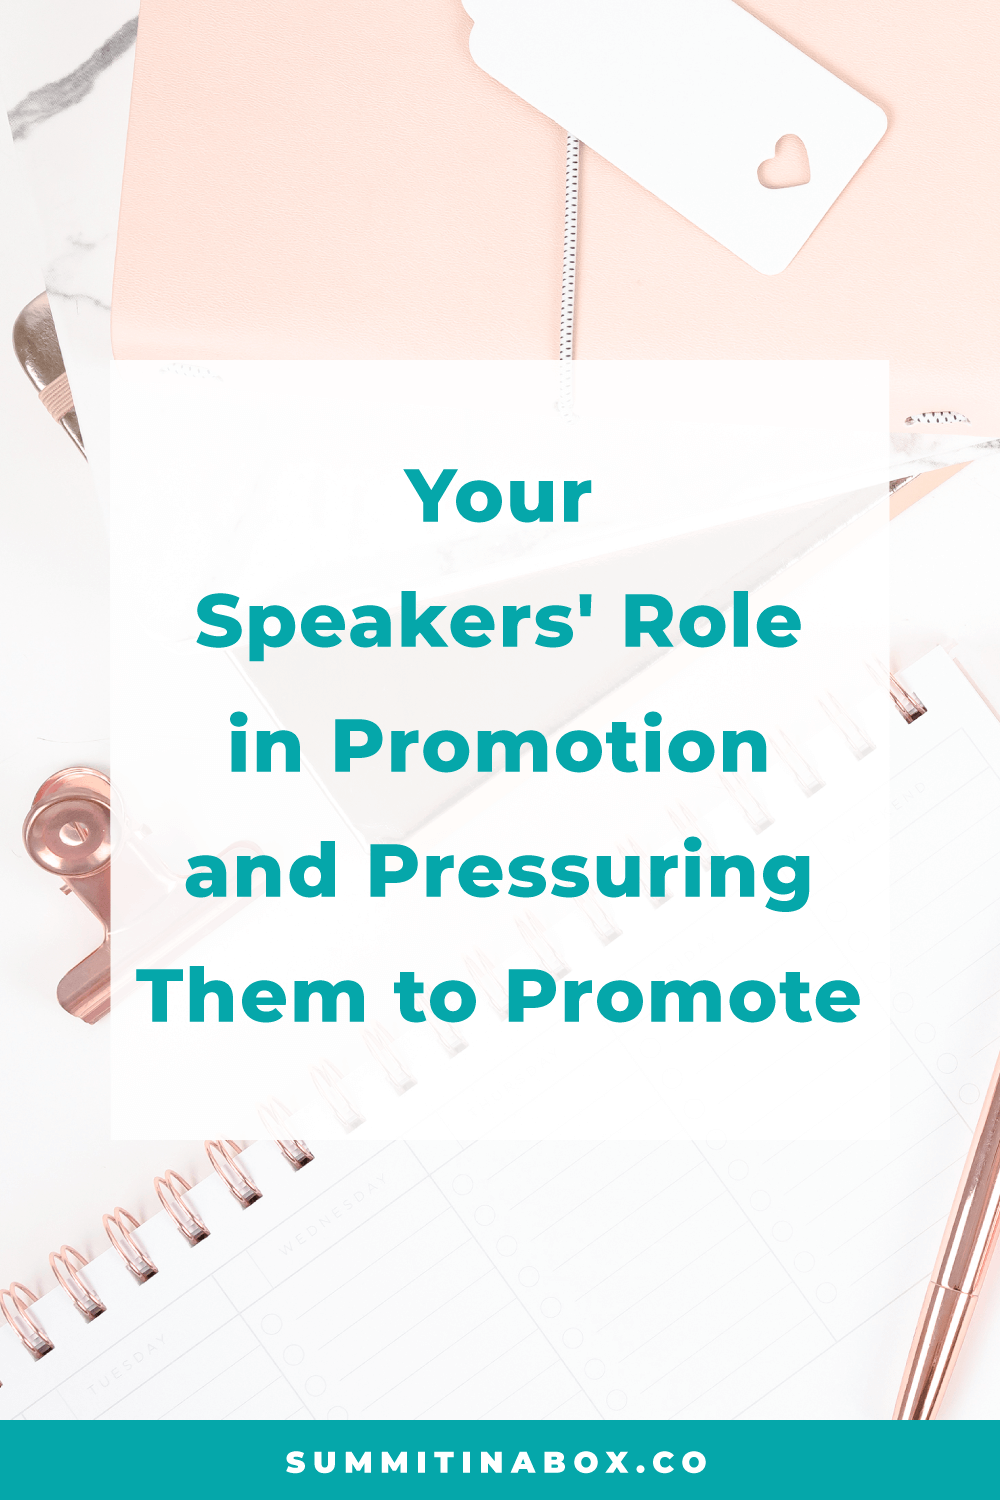 It is hard to host a summit that skyrockets your email list without speaker promotion. But it's not your speakers' responsibility to make your summit successful.